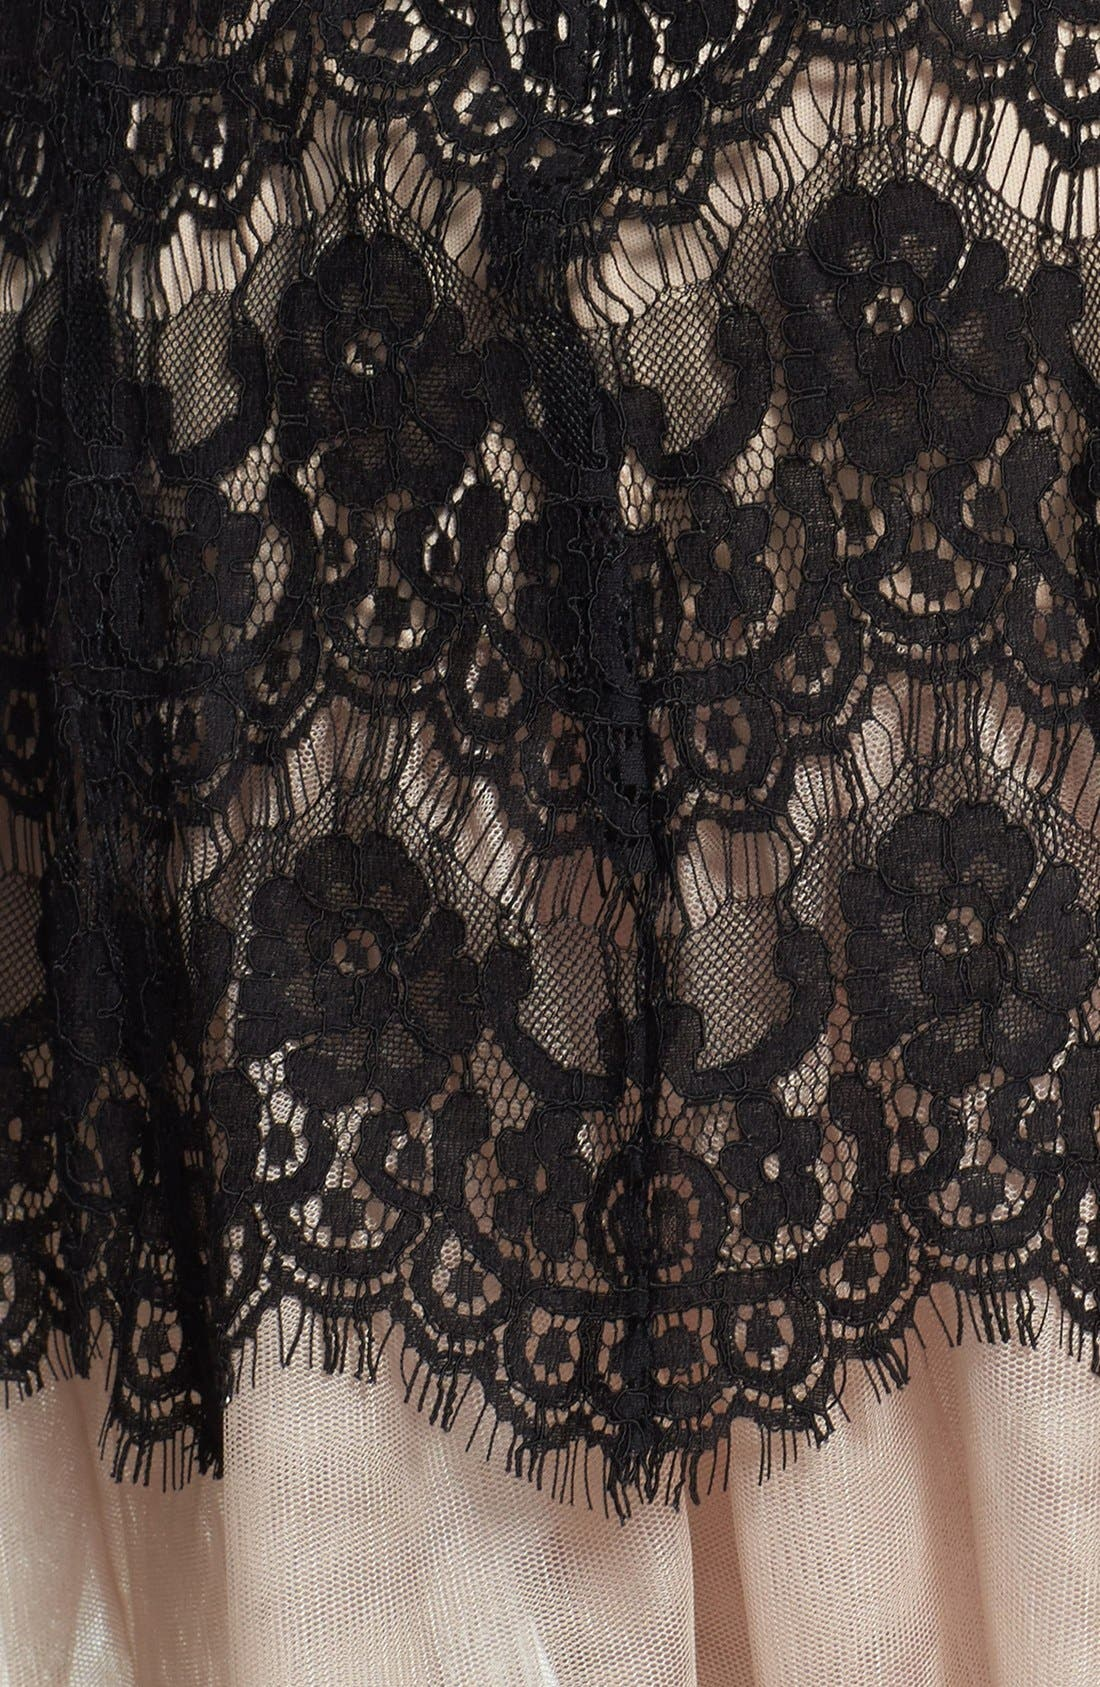 BETSY & ADAM,                             Short Sleeve Lace Fit & Flare Dress,                             Alternate thumbnail 3, color,                             001